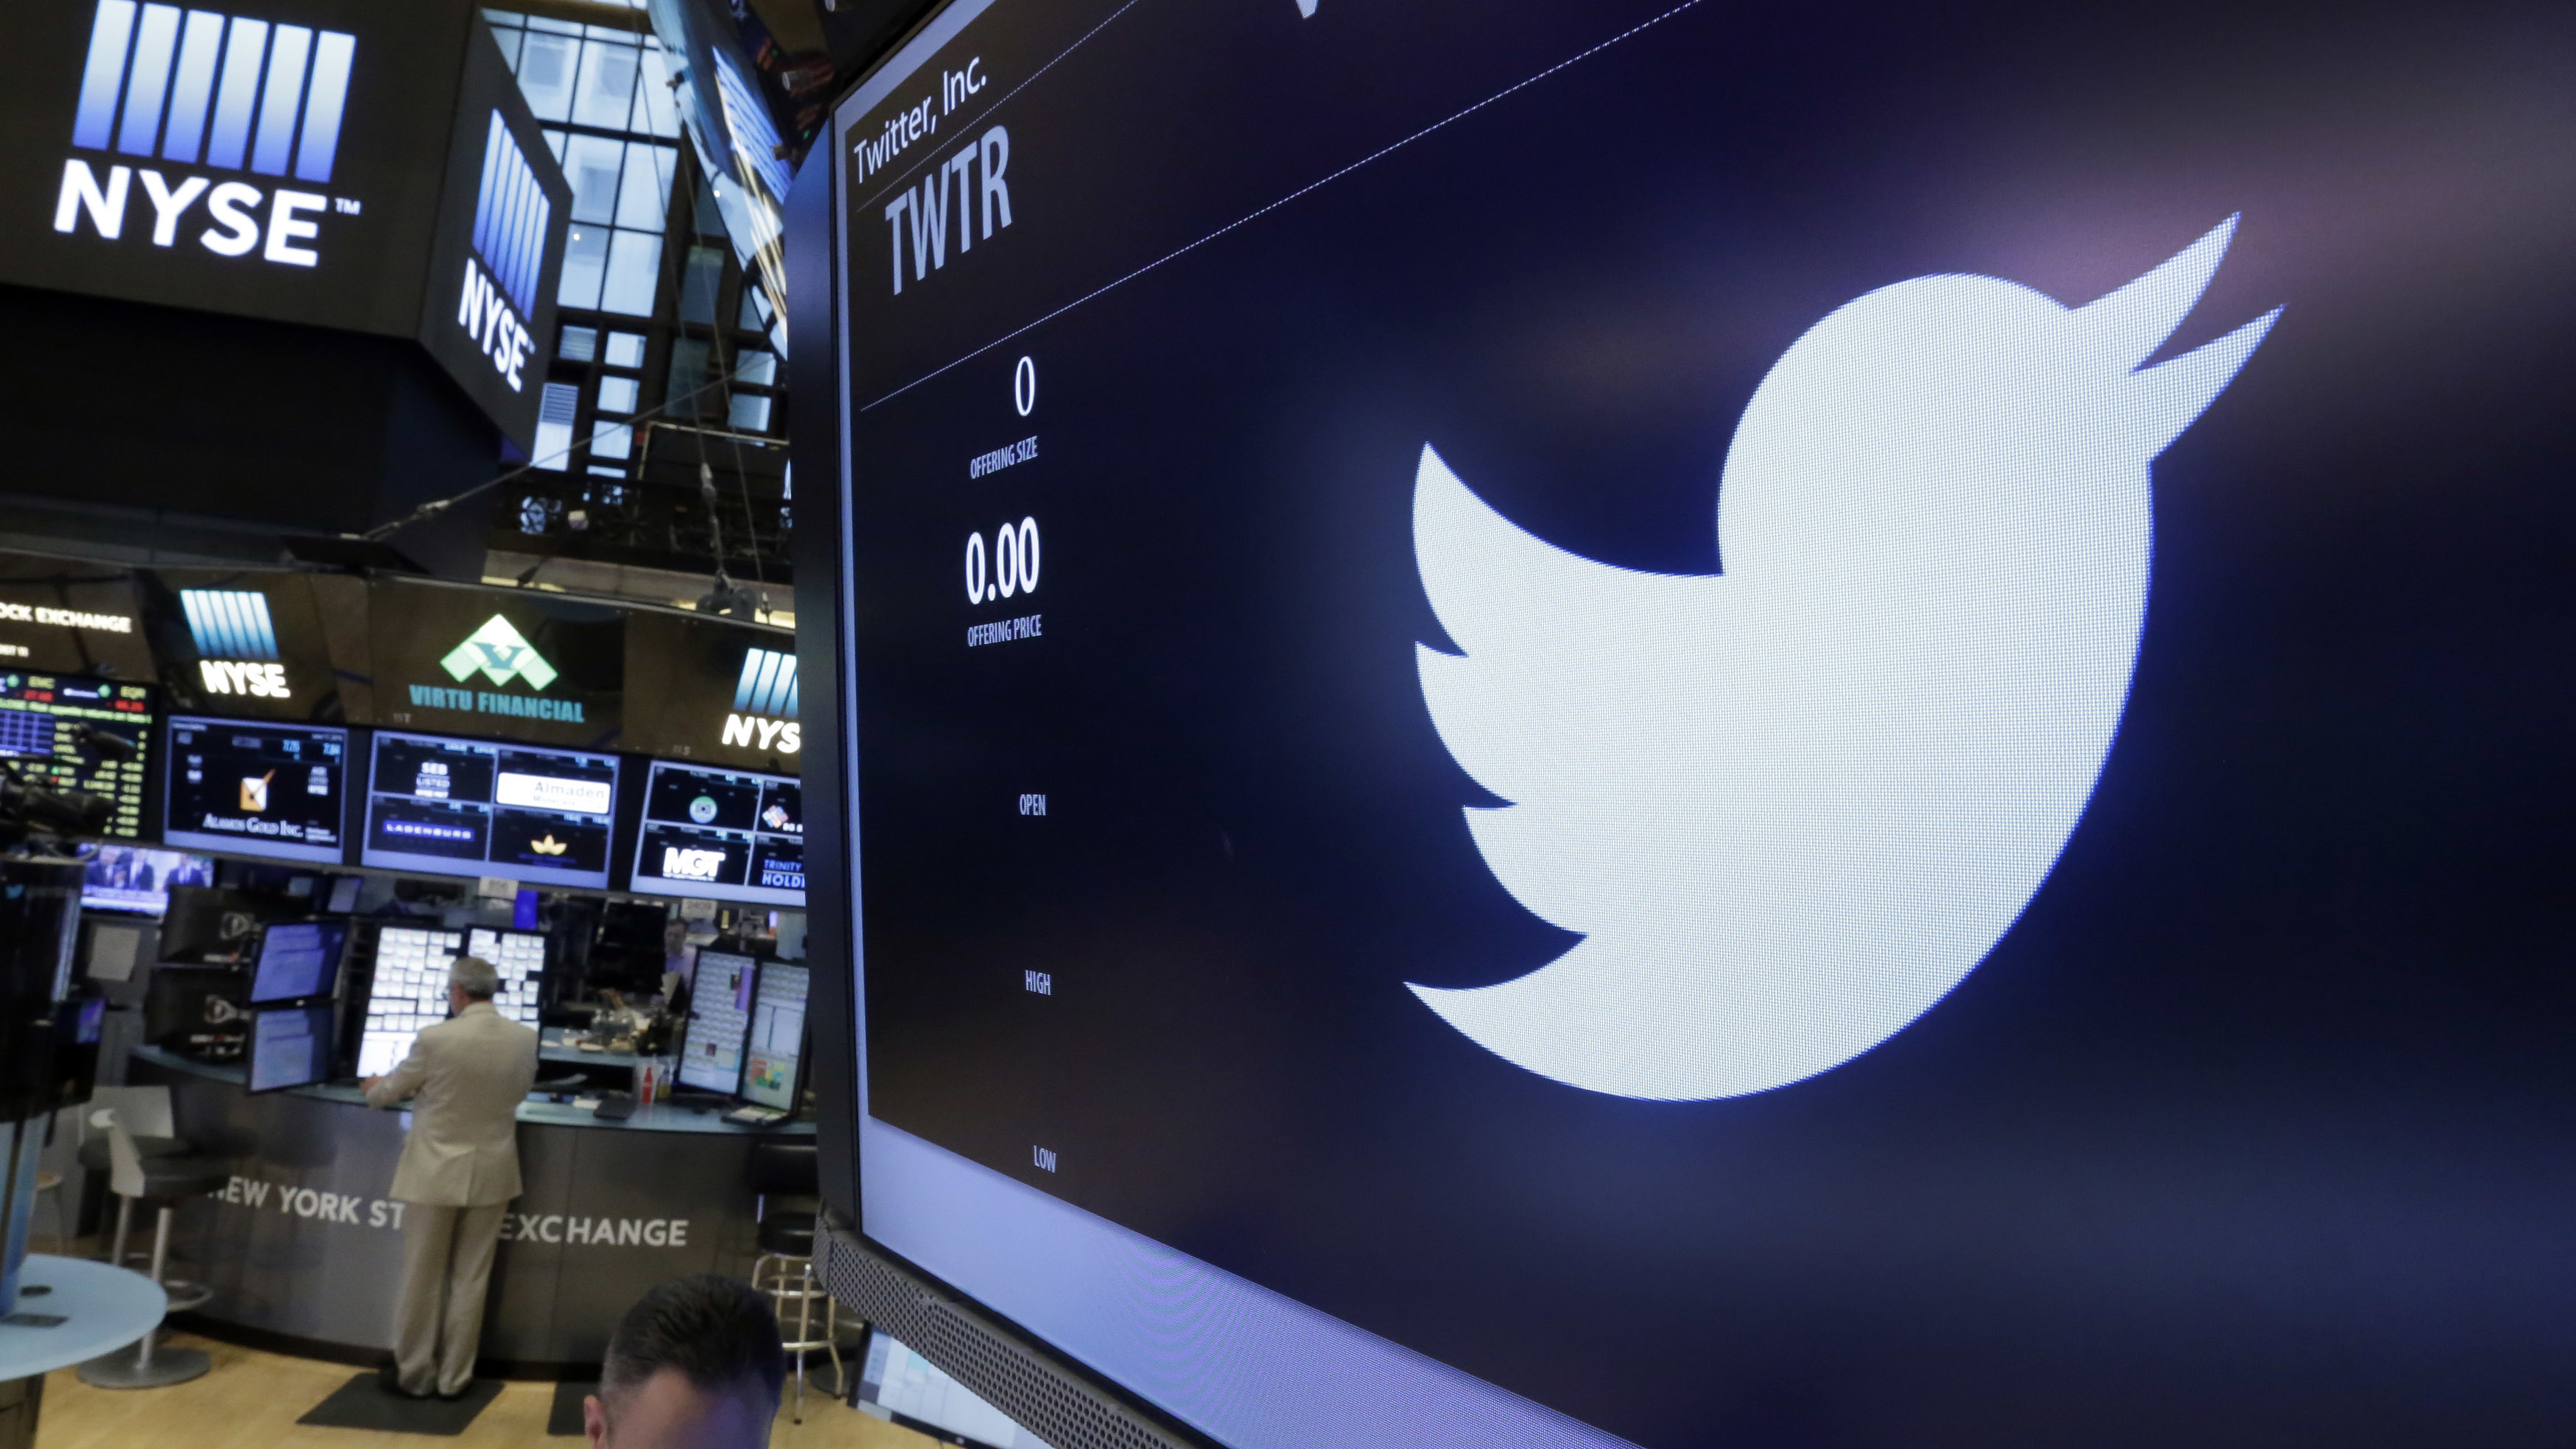 The Twitter logo appears at the post where it trades, on the floor of the New York Stock Exchange, Friday, June 17, 2016. (AP Photo/Richard Drew)